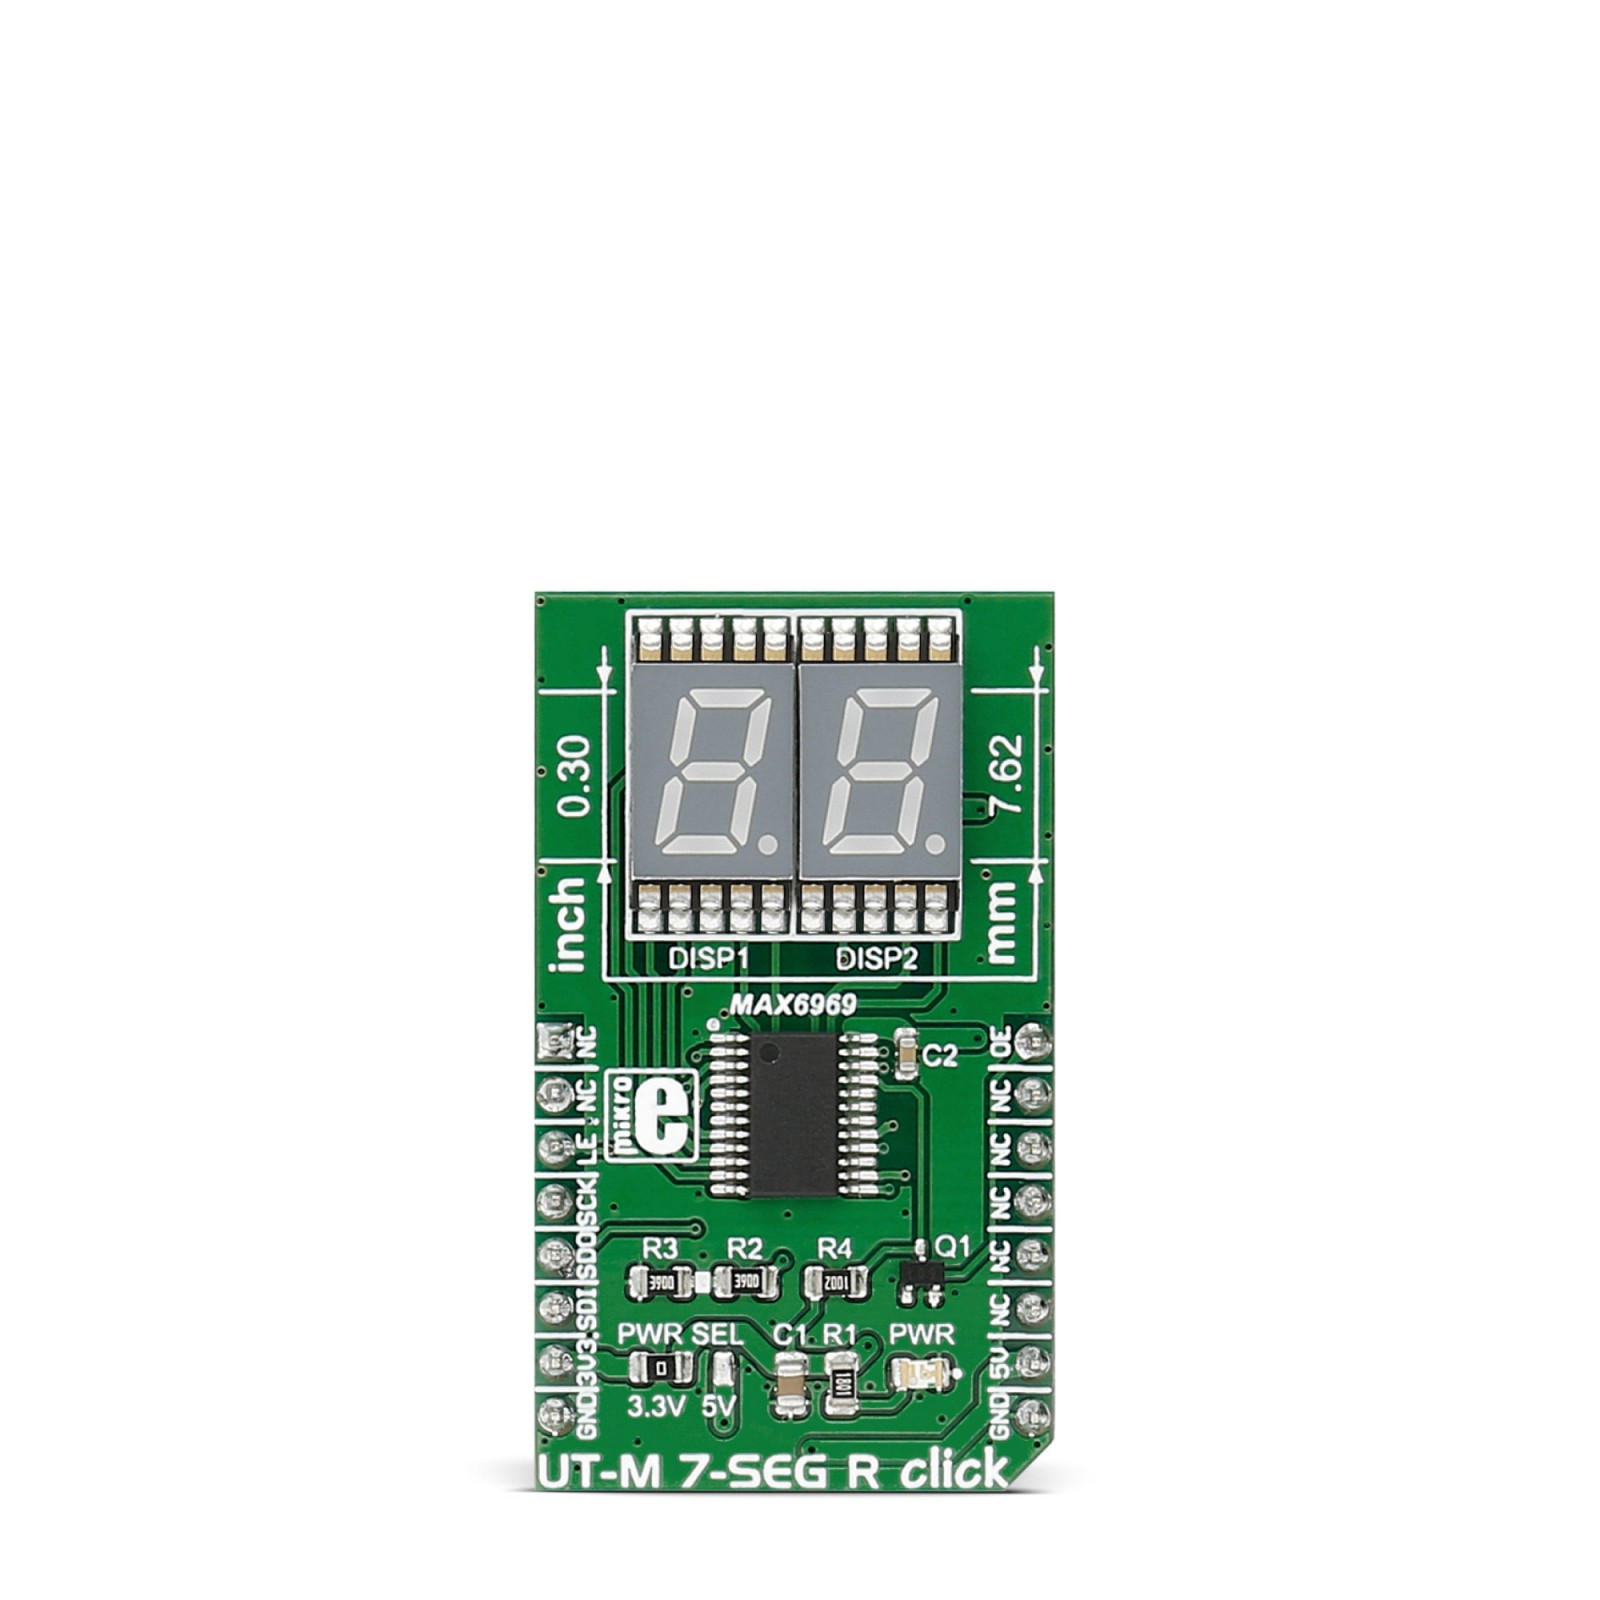 Ut M 7 Seg R Click Board With Two Segment Displays Circuit Diagram Display Engineering Project Mgctlbxnmzp Mgctlbxv5112 Mgctlbxlc Mgctlbxpprestashop